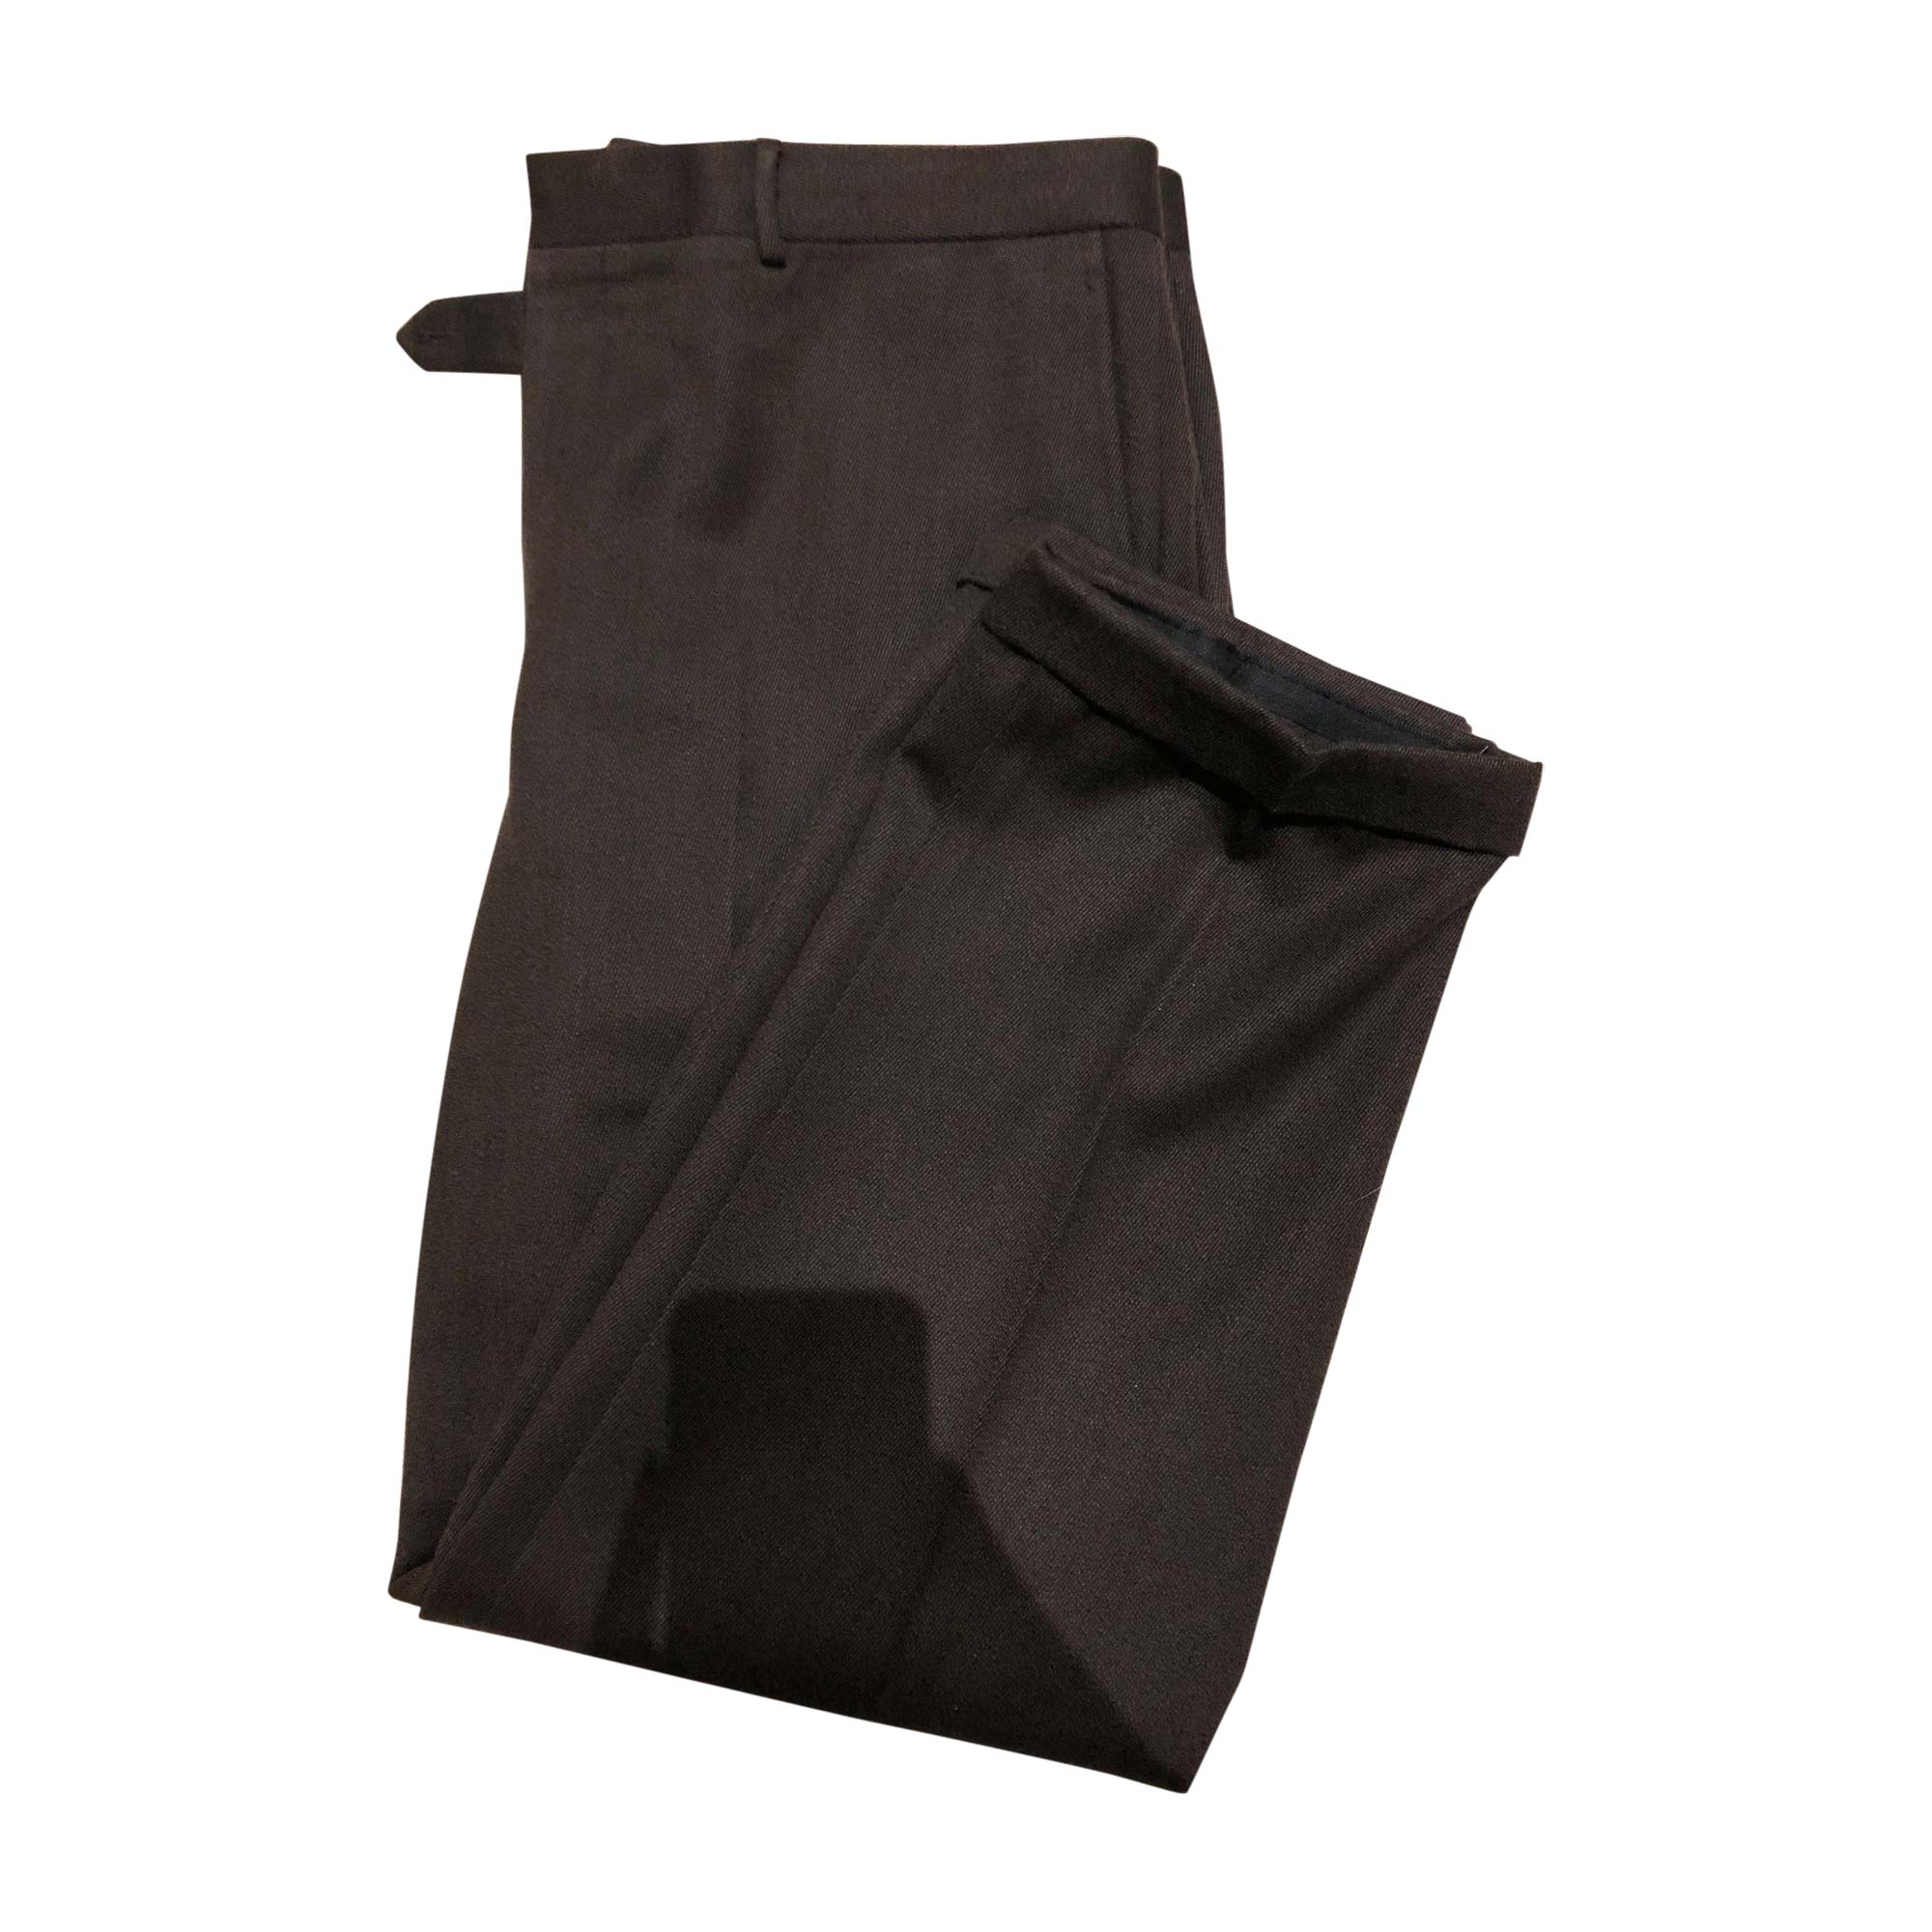 Pantalon de costume RALPH LAUREN Marron